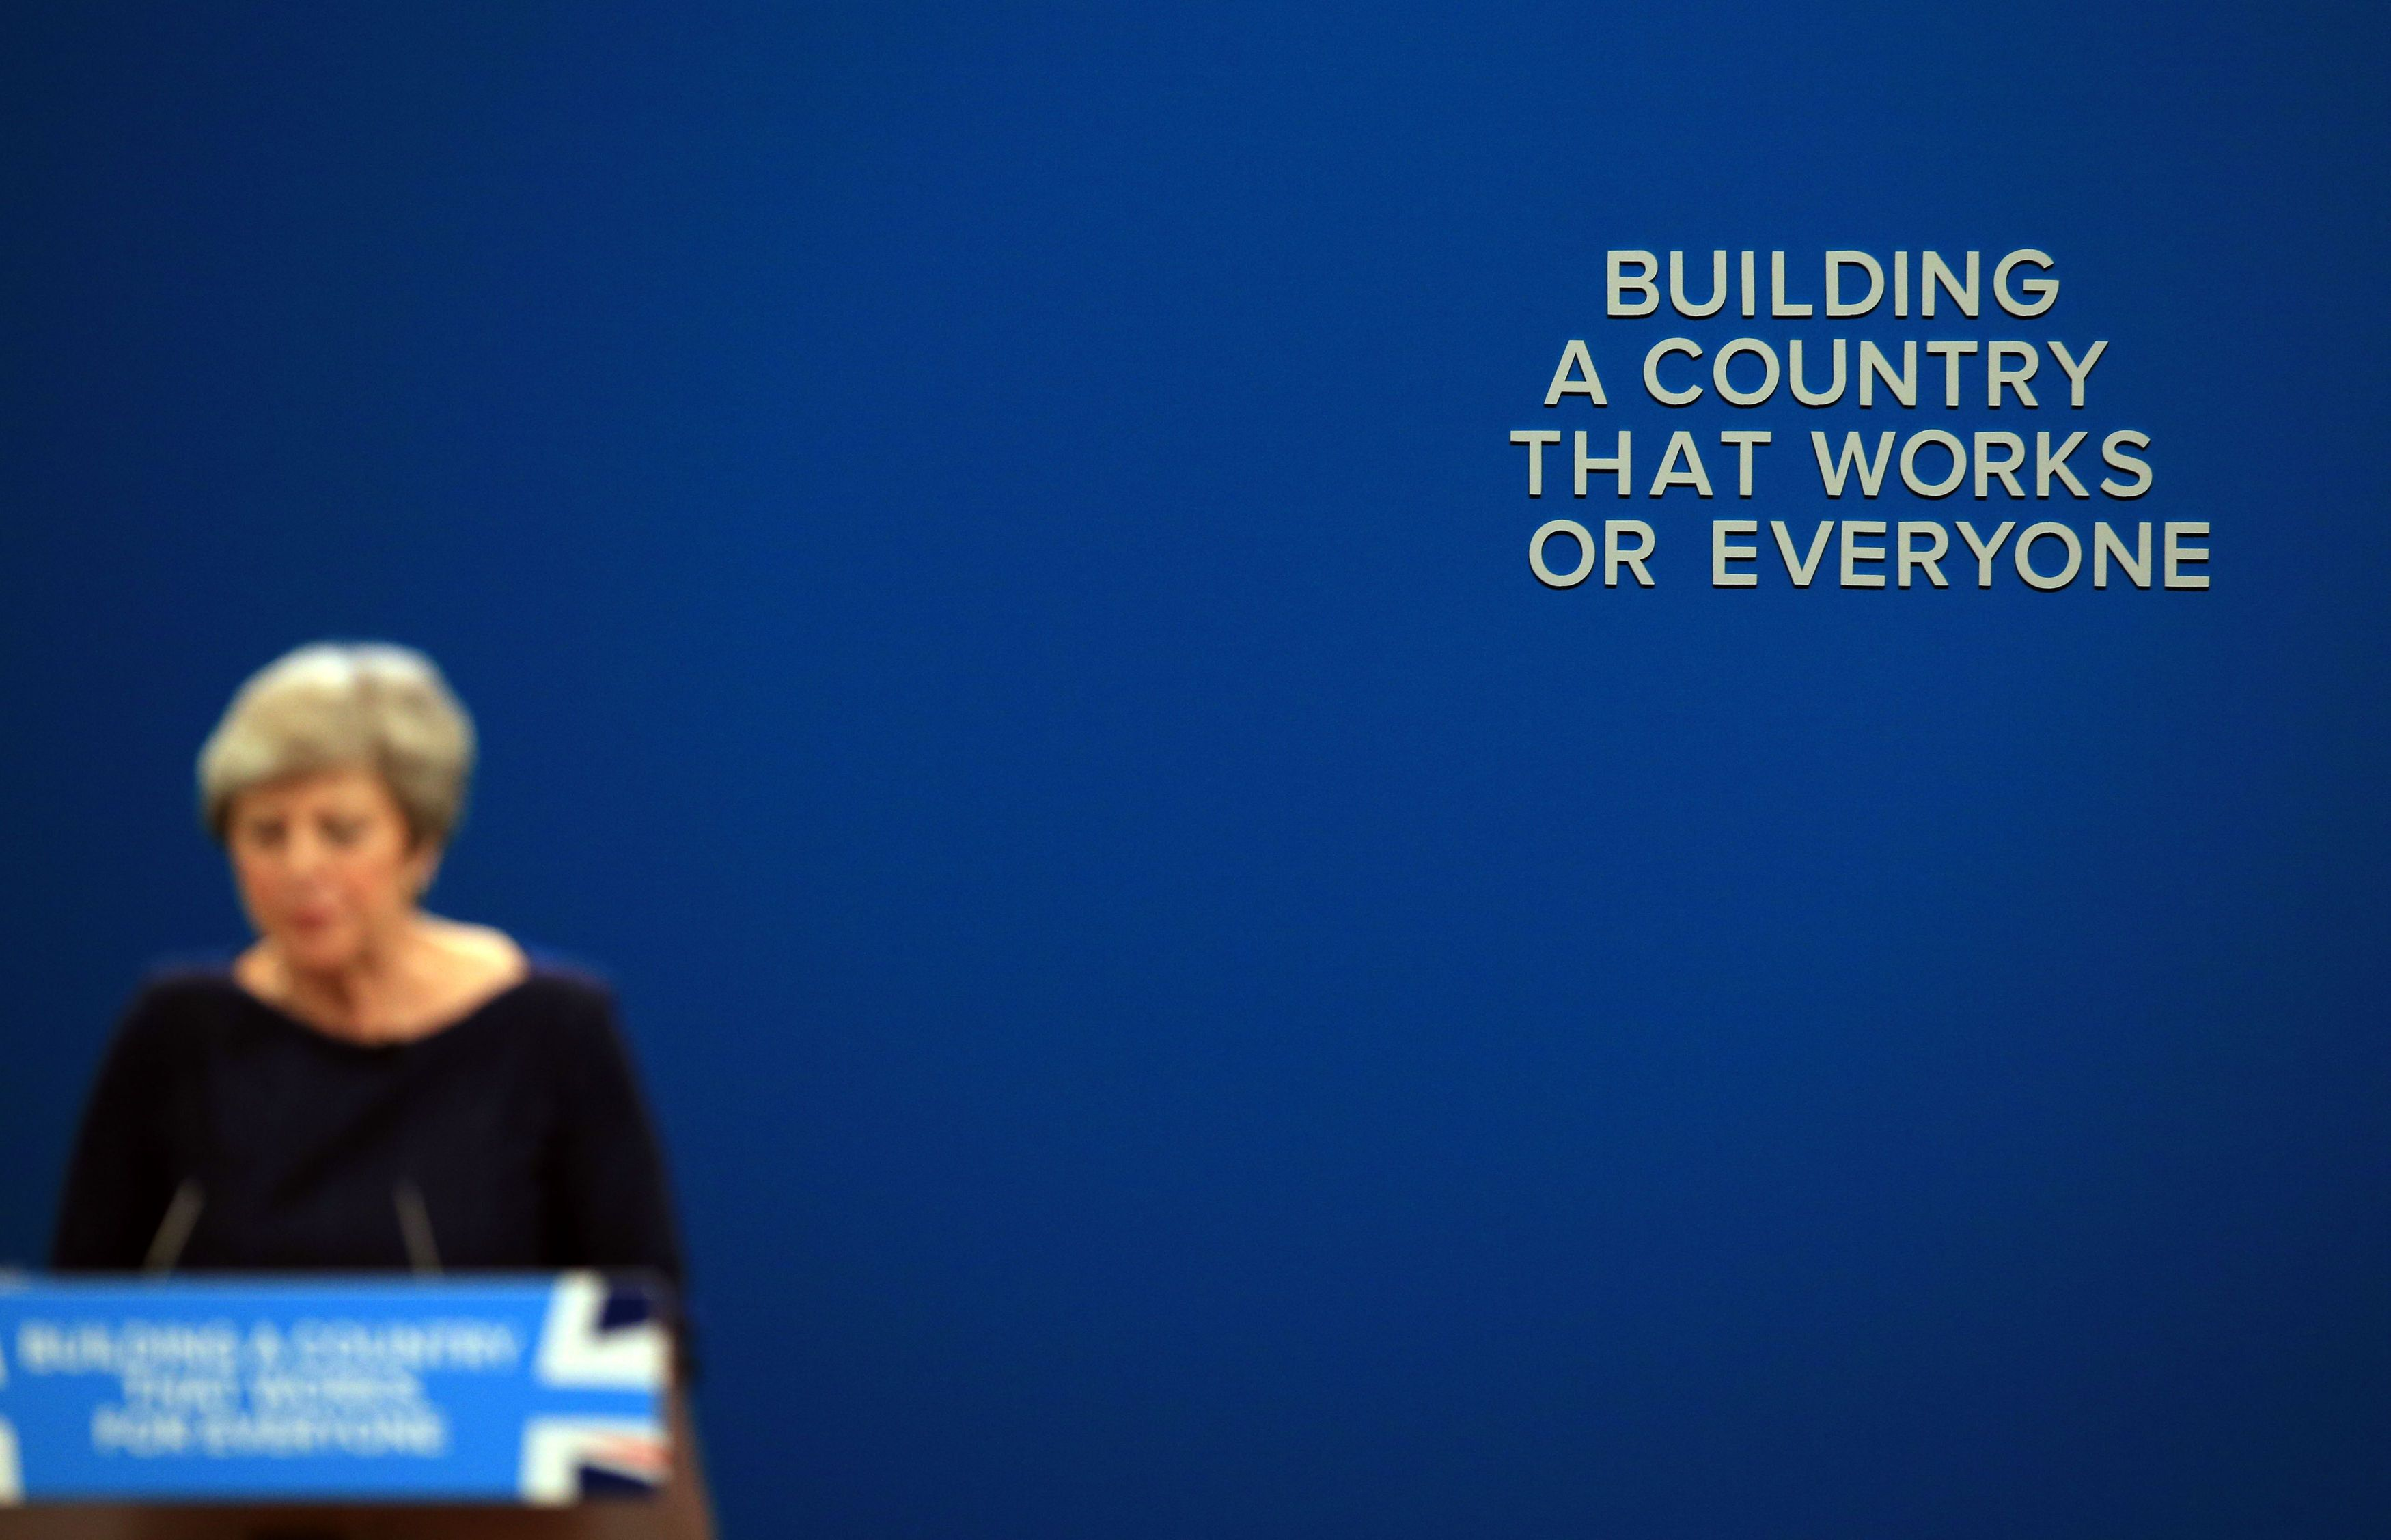 The Conservative government has pledged to solve problems facing young people. But three such policies...